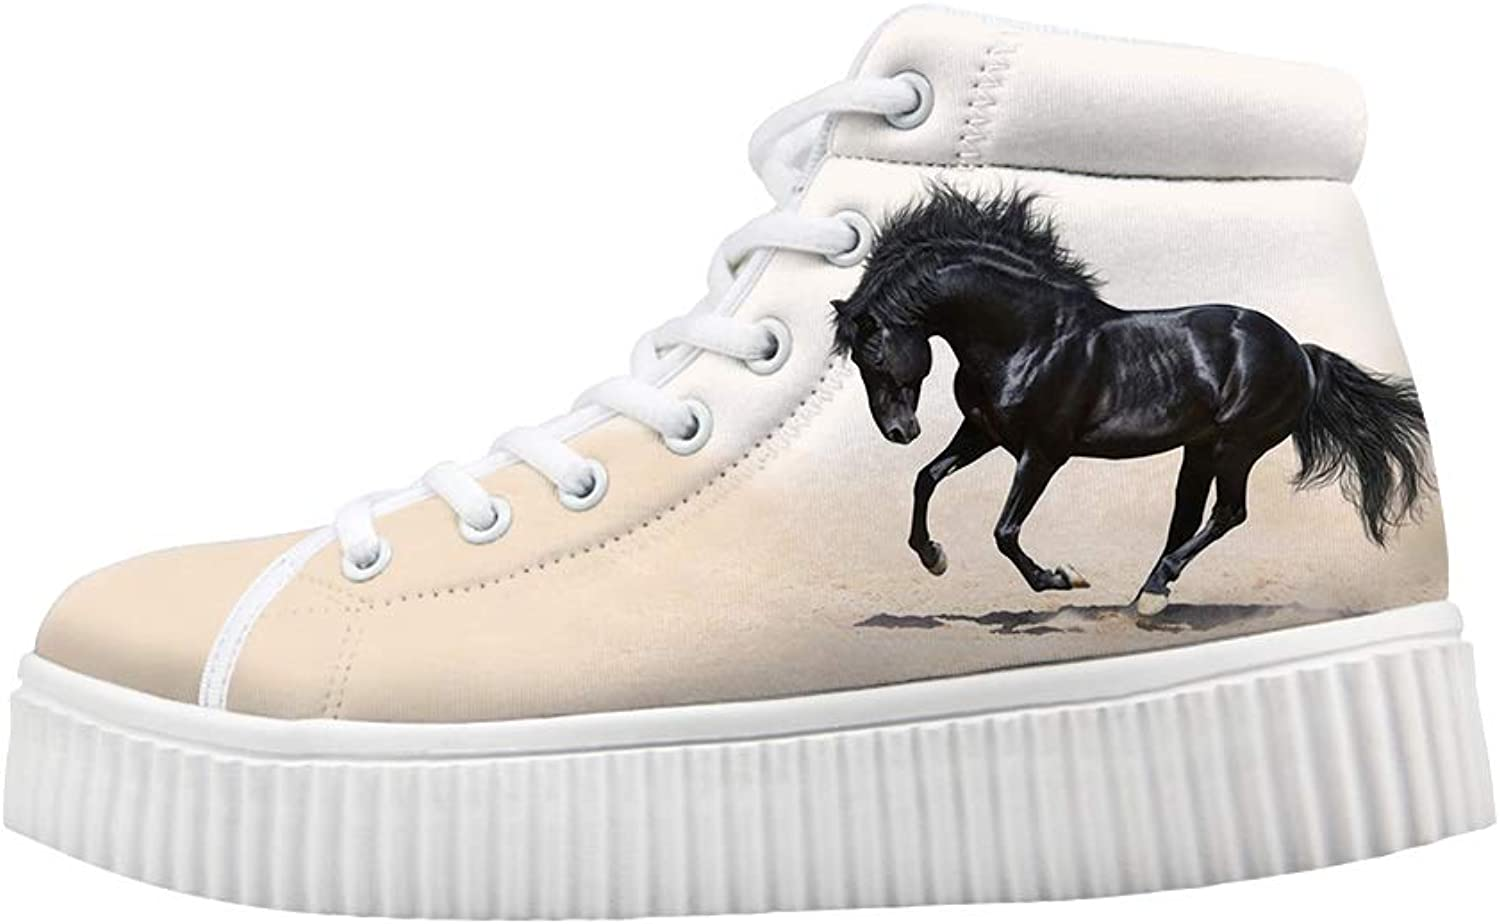 Owaheson Platform Lace up Sneaker Casual Chunky Walking shoes High Top Women High Morale Purebred Steed Gallant Horse